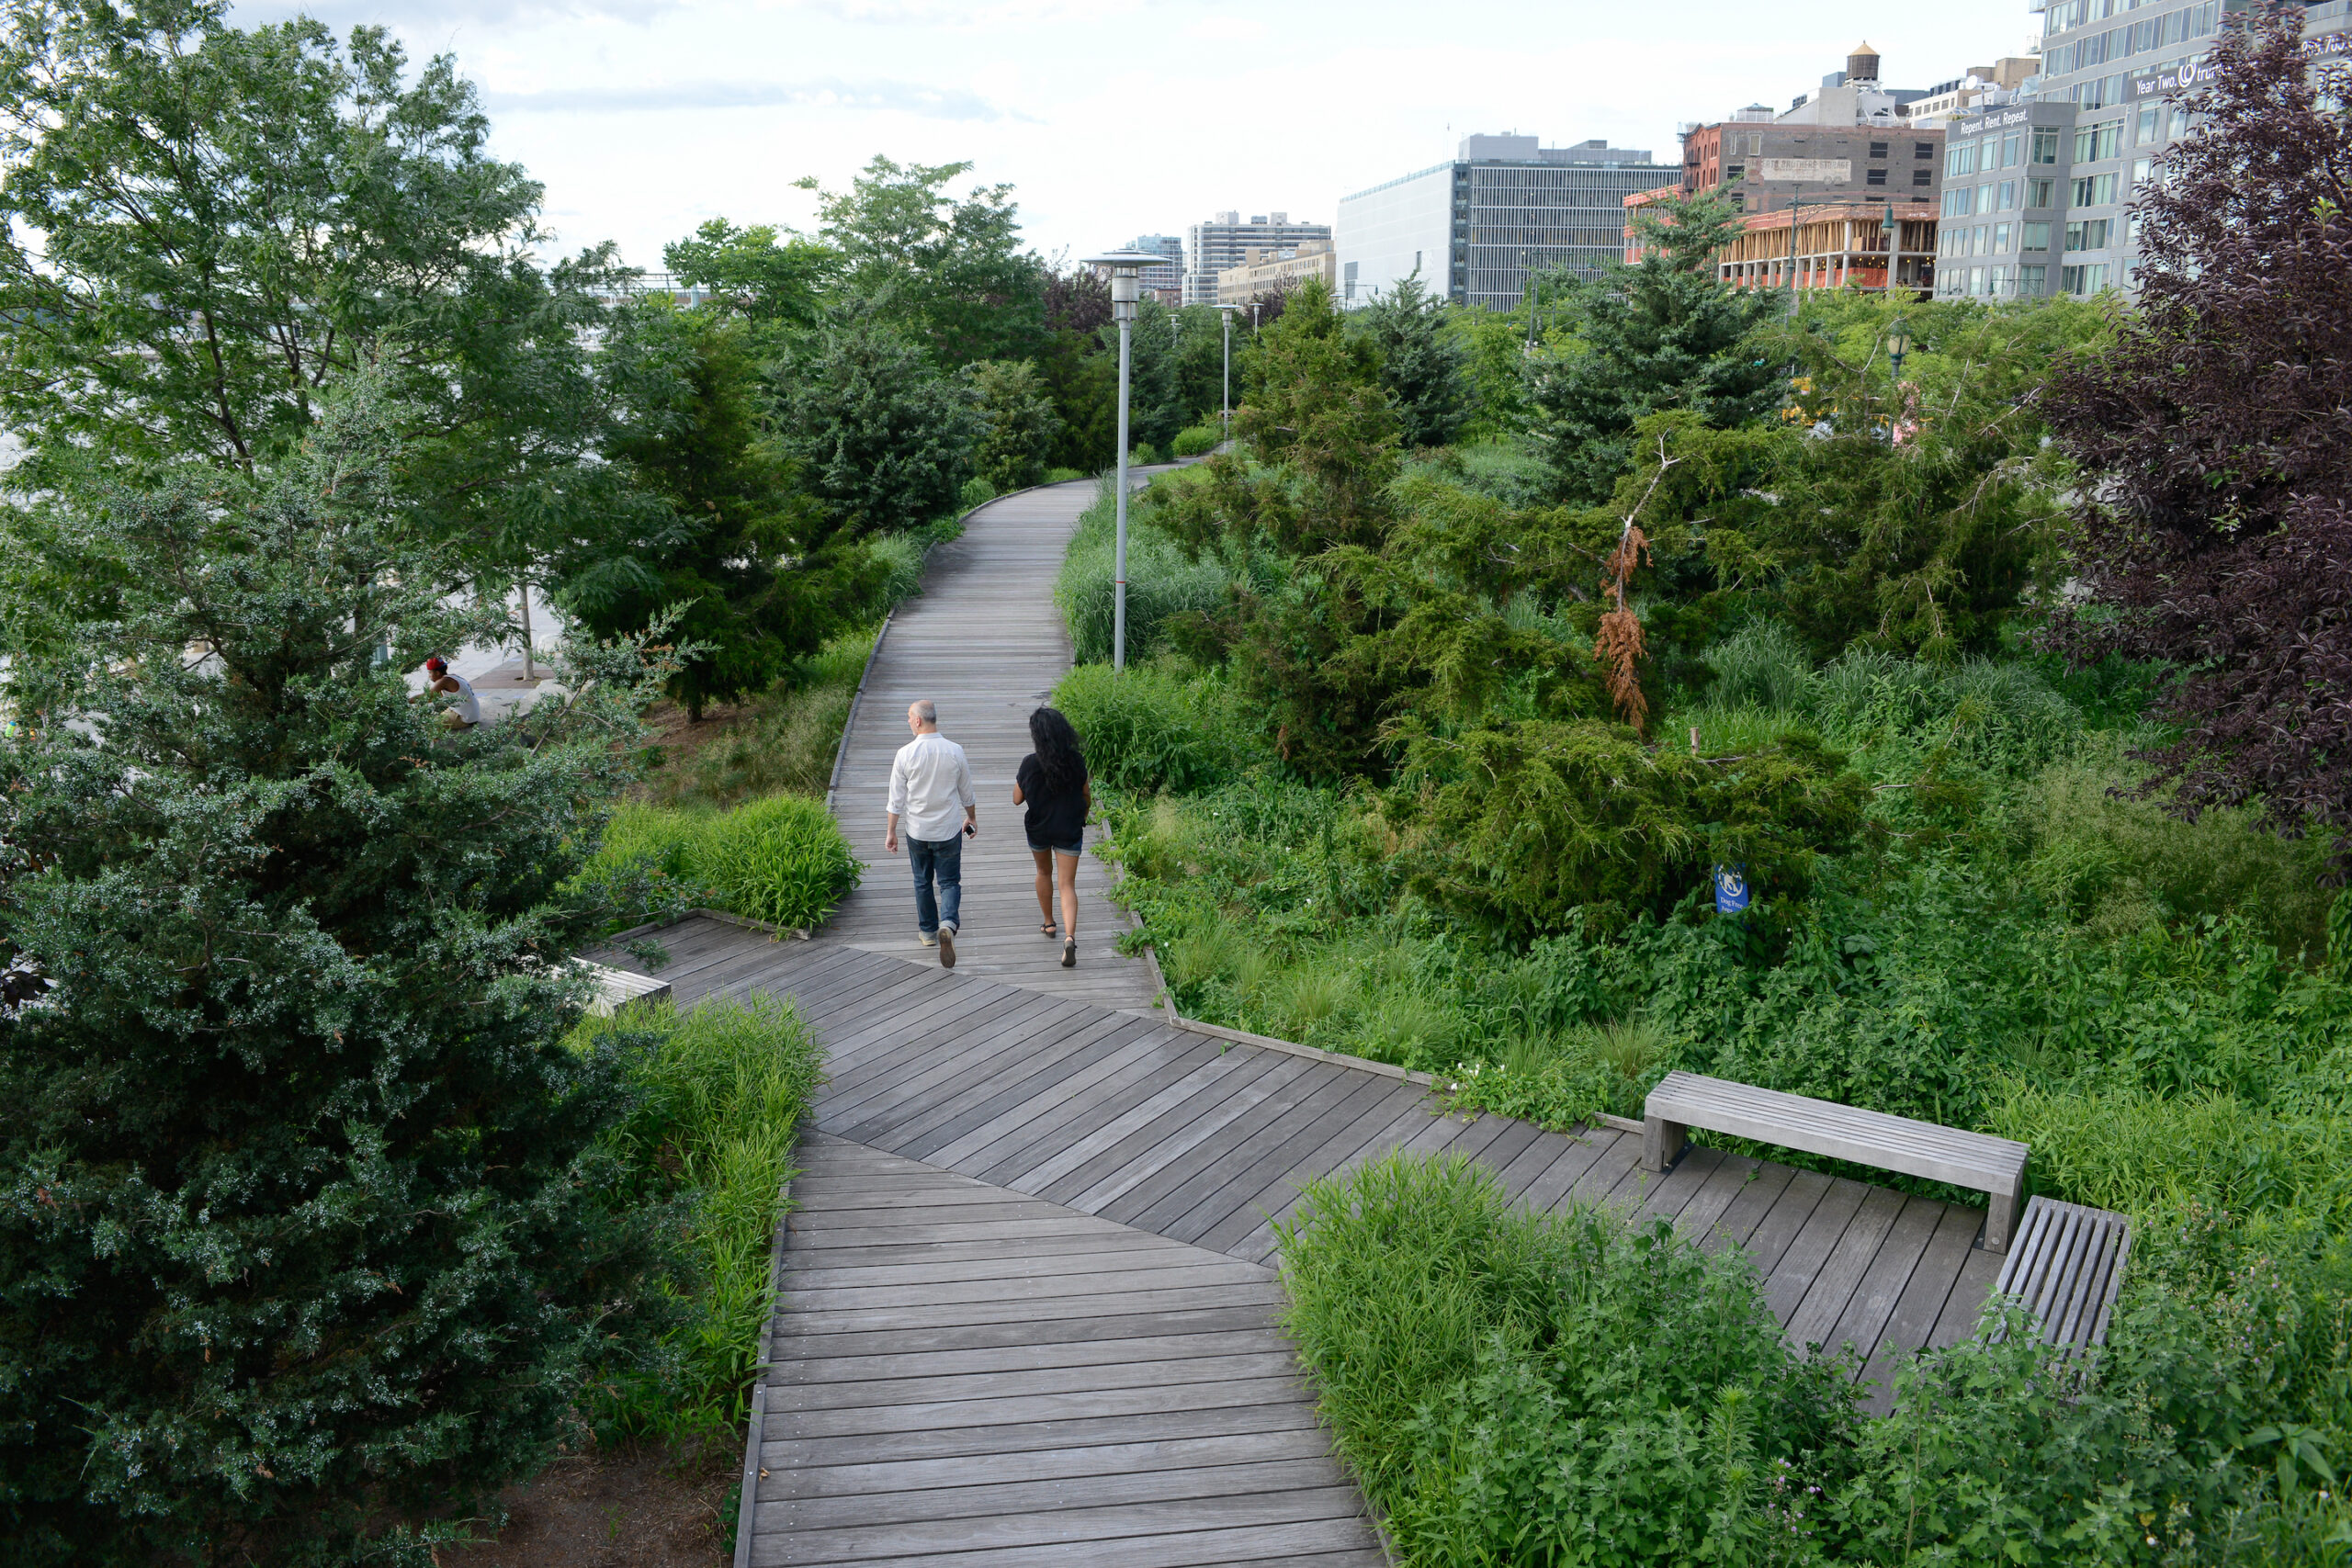 The tribeca boardwalk and two park visitors walking